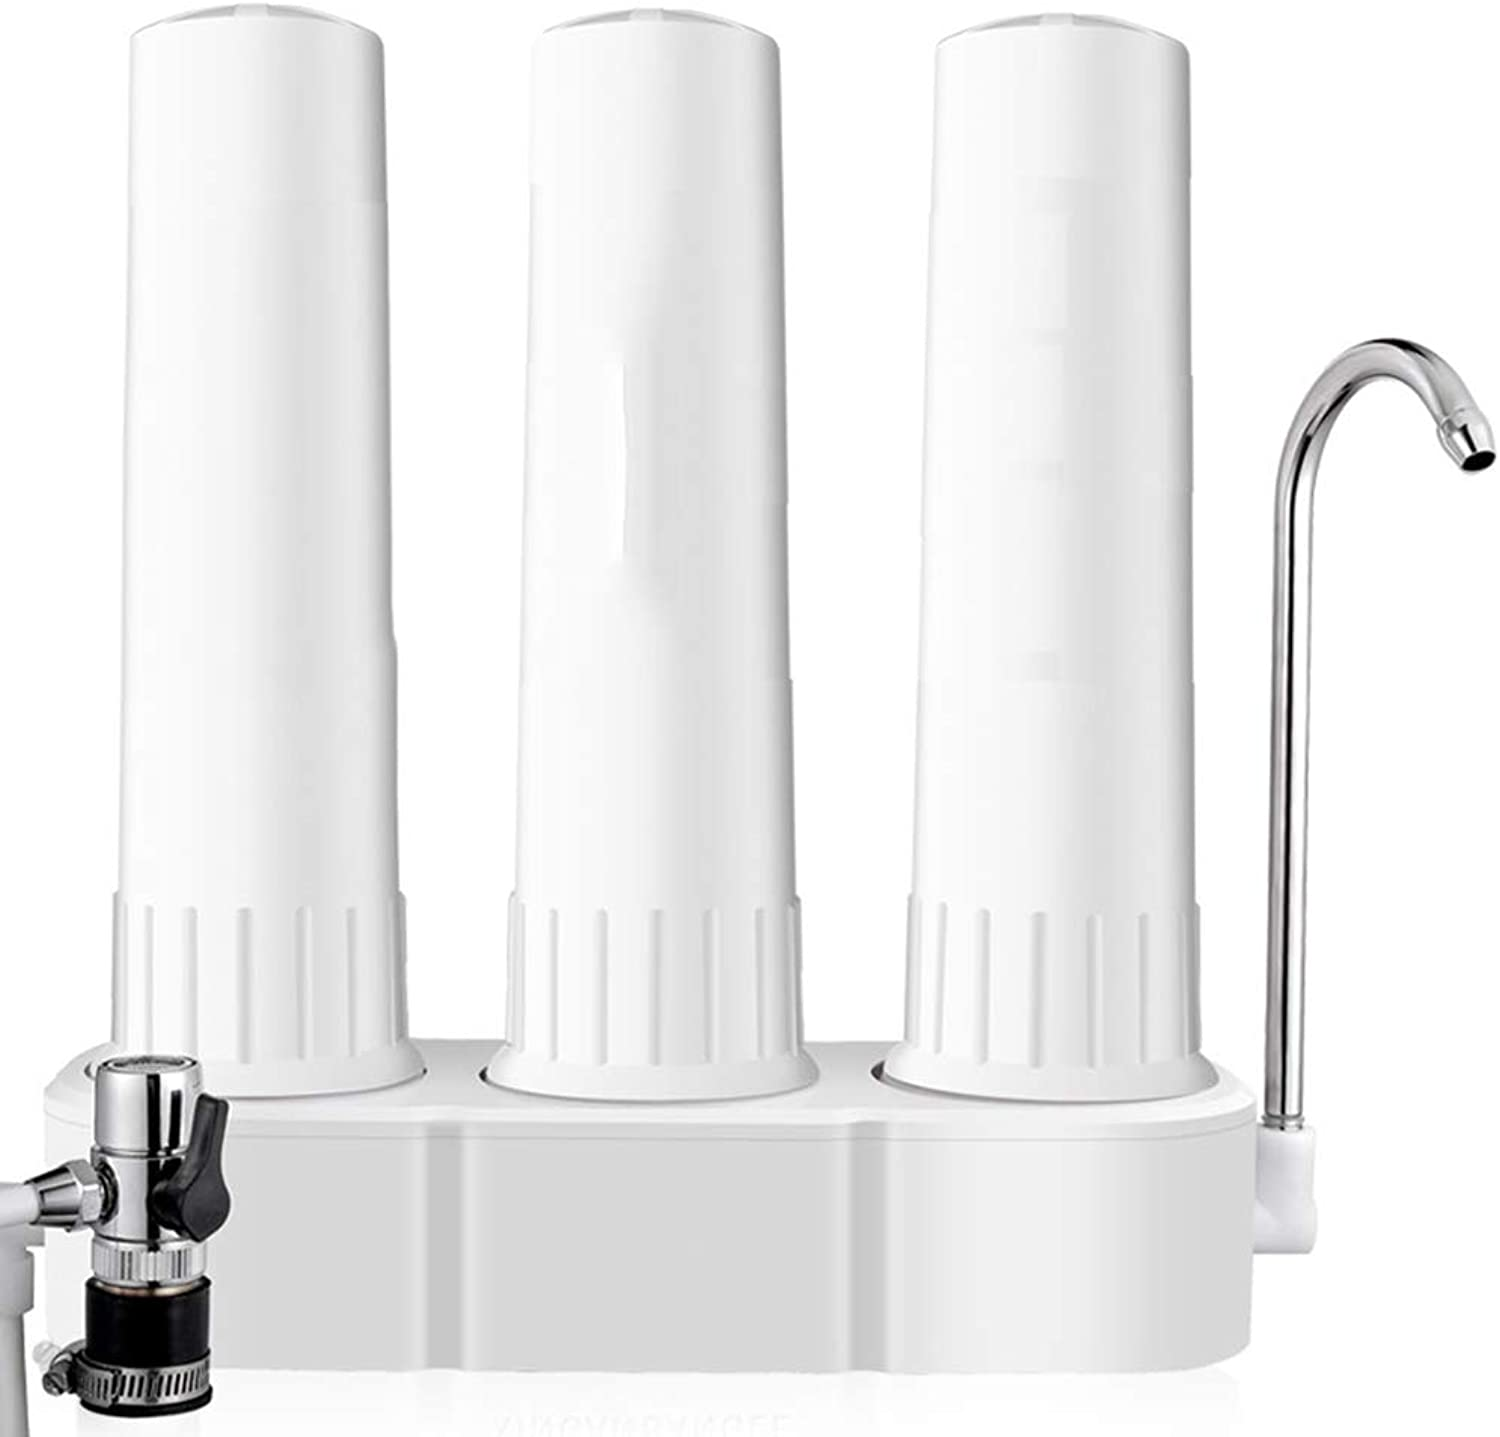 L&Z Kitchen pure water purifier Maximum Performance Reverse Osmosis Drinking Water Filtration System with Booster Pump Household water purifier faucet pre-filter 3-Stage